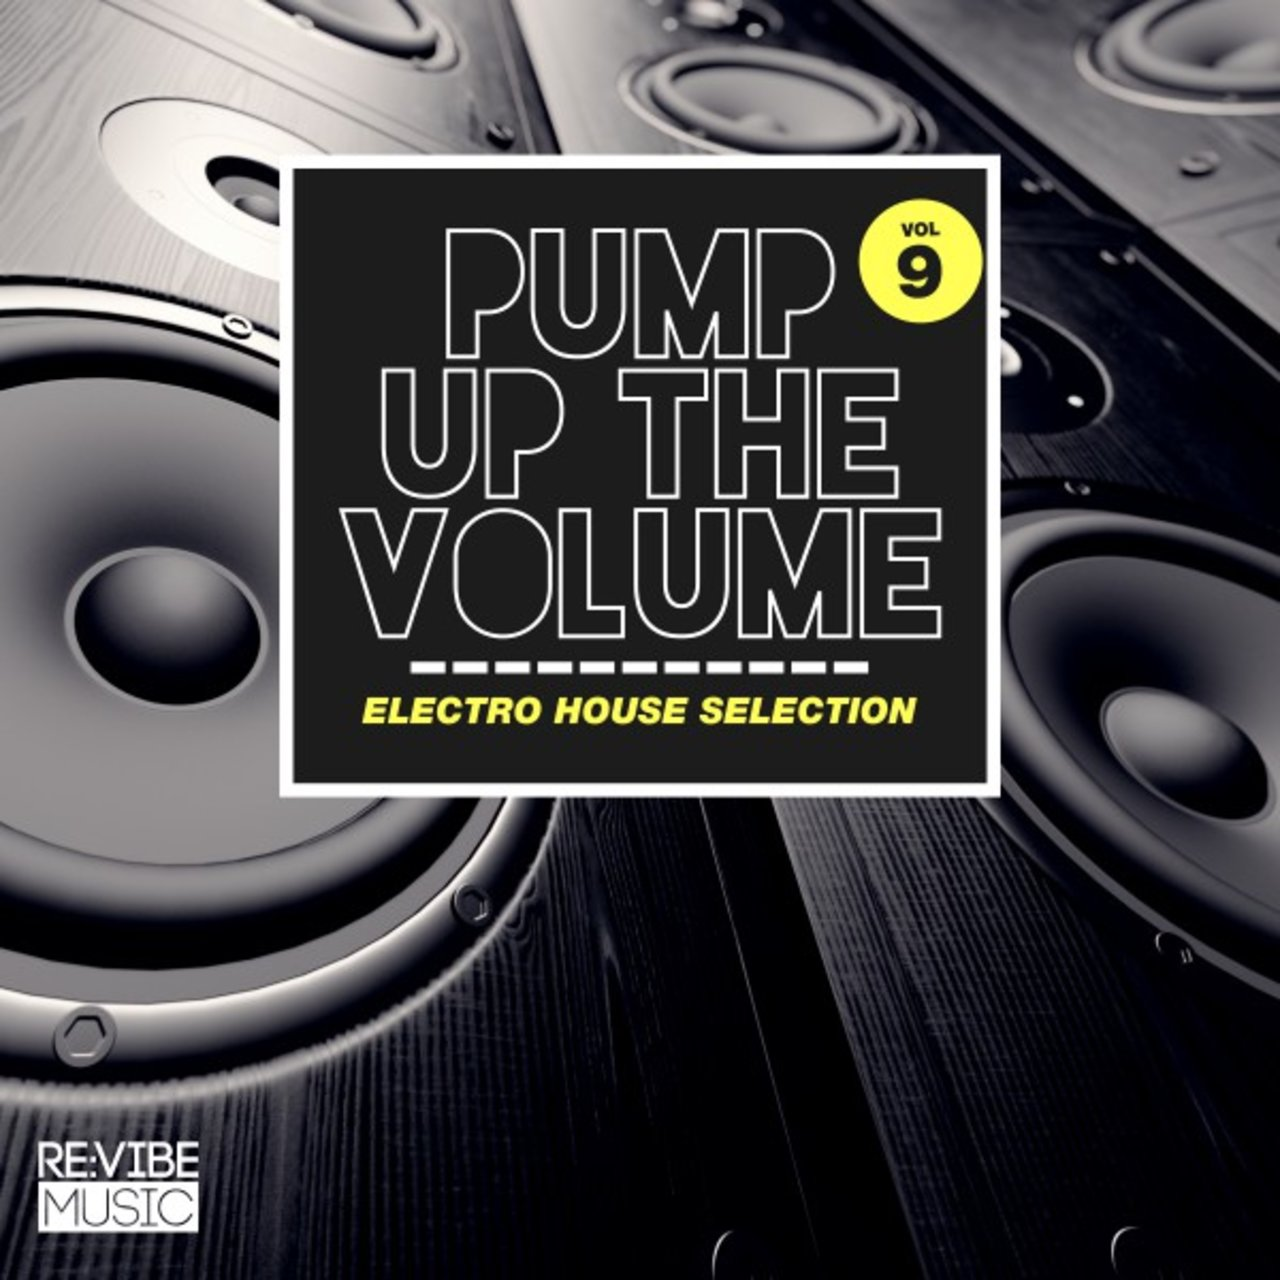 Pump up The, Vol. - Electro House Selection, Vol. 9